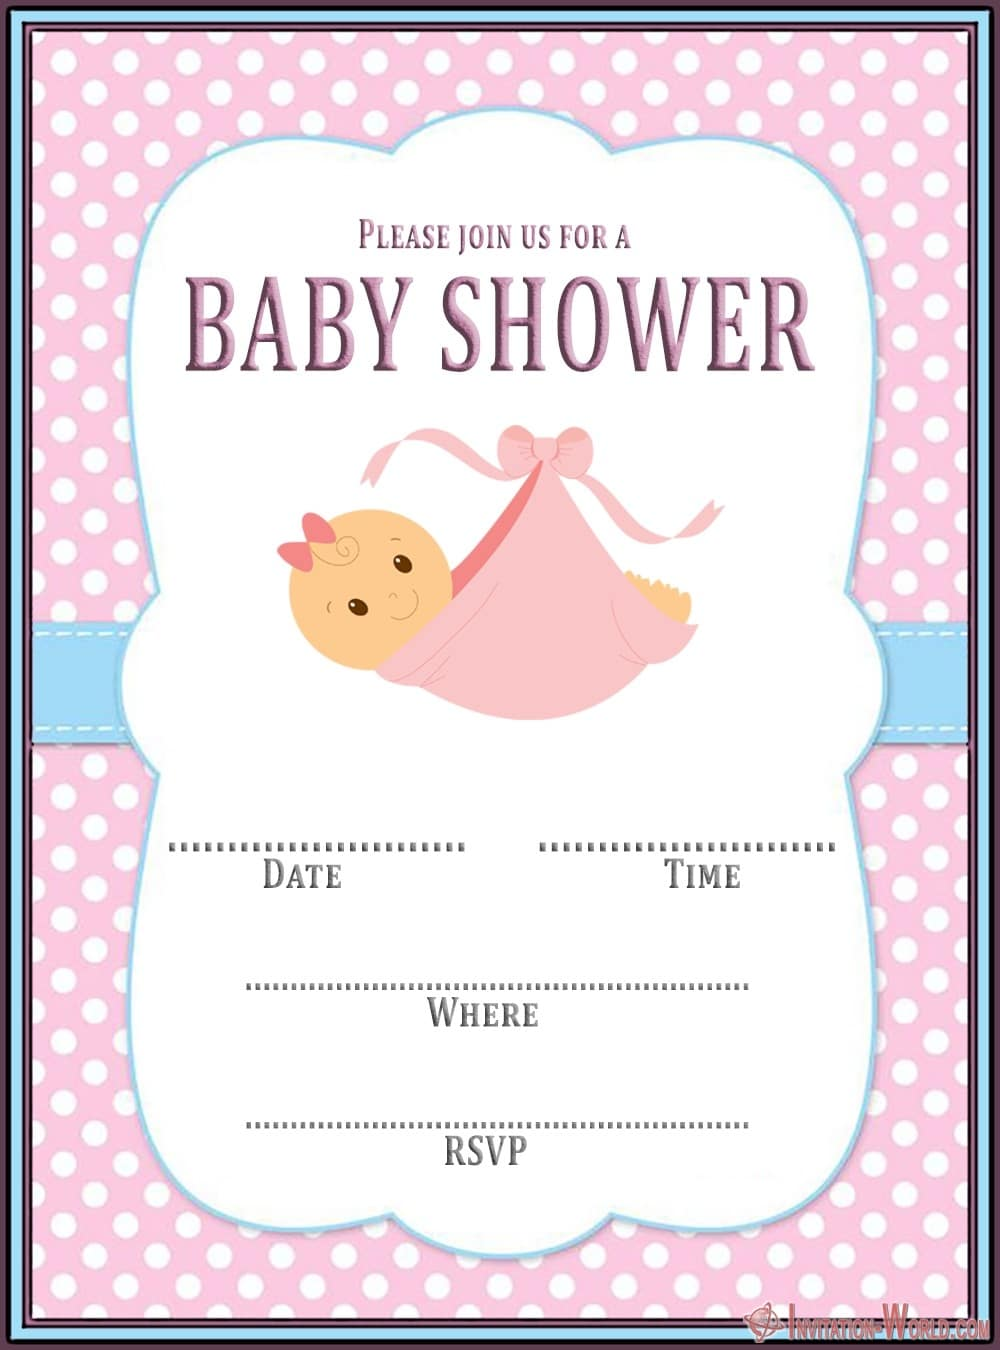 Free Baby Shower Invitation Template Pink - Free Baby Shower Invitation Template Pink